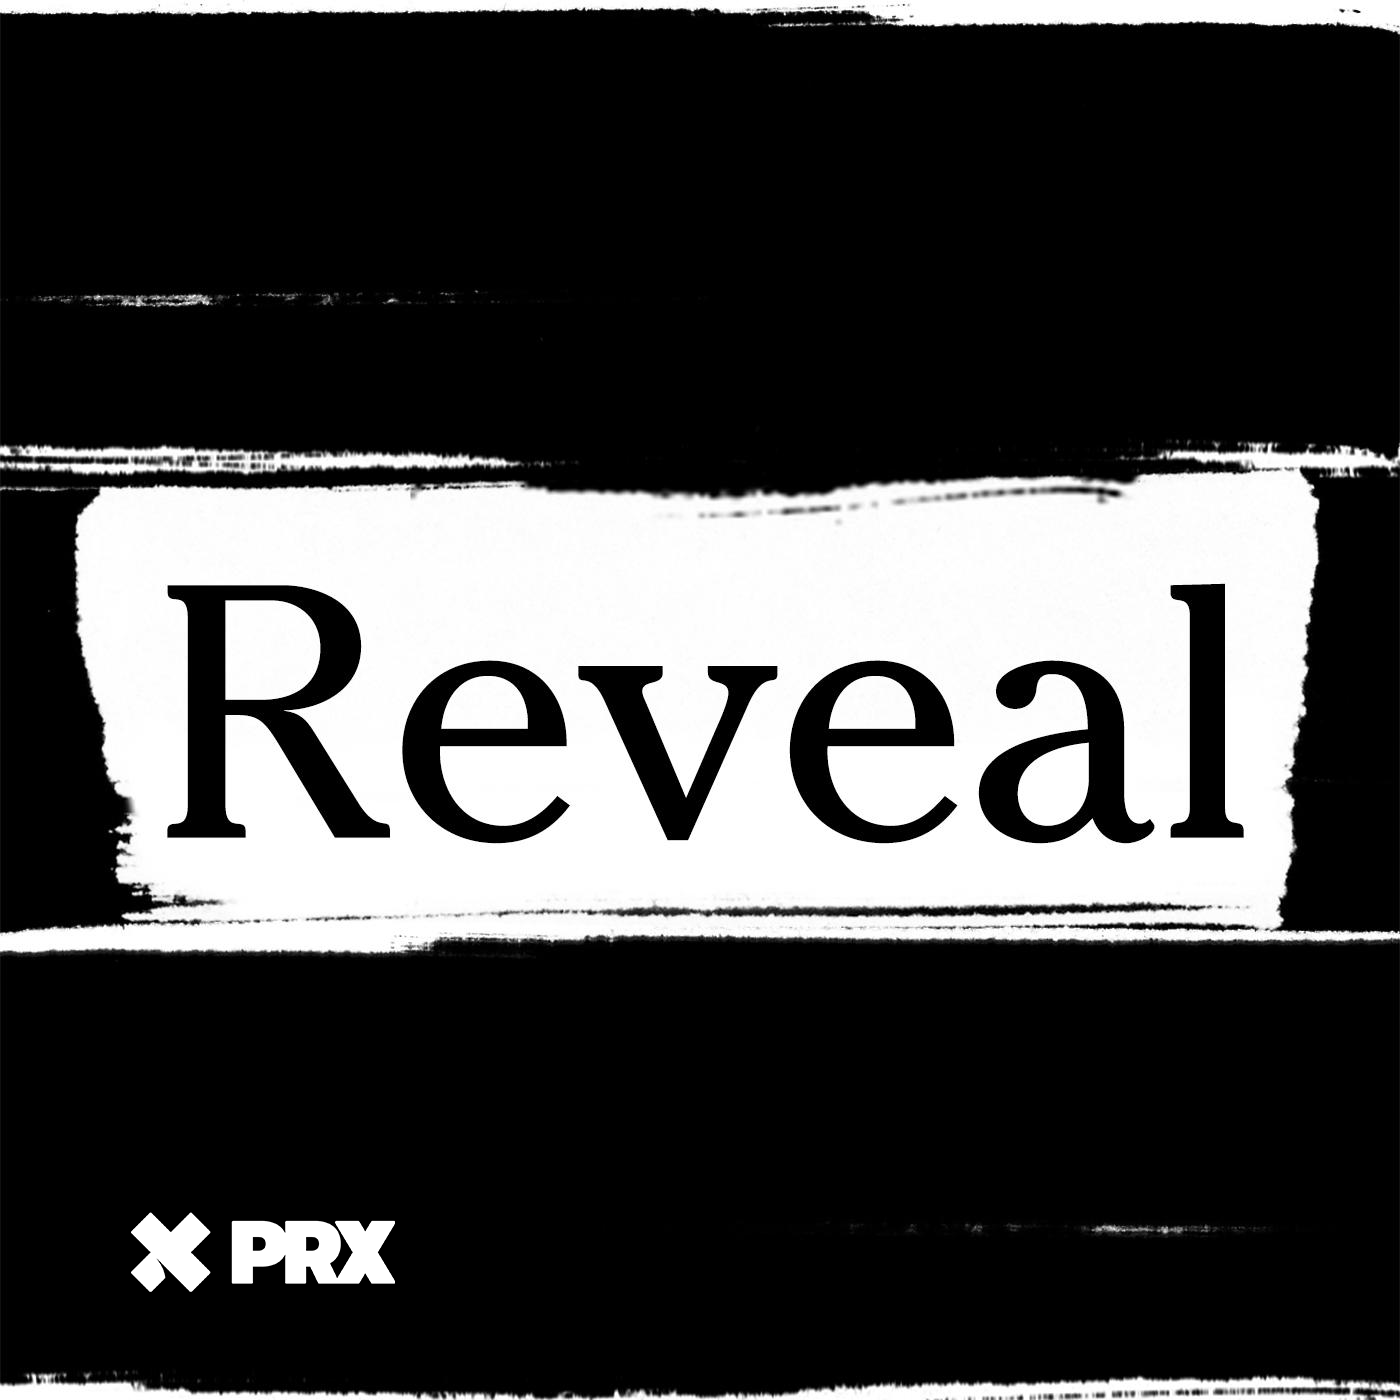 reveal+prx.png